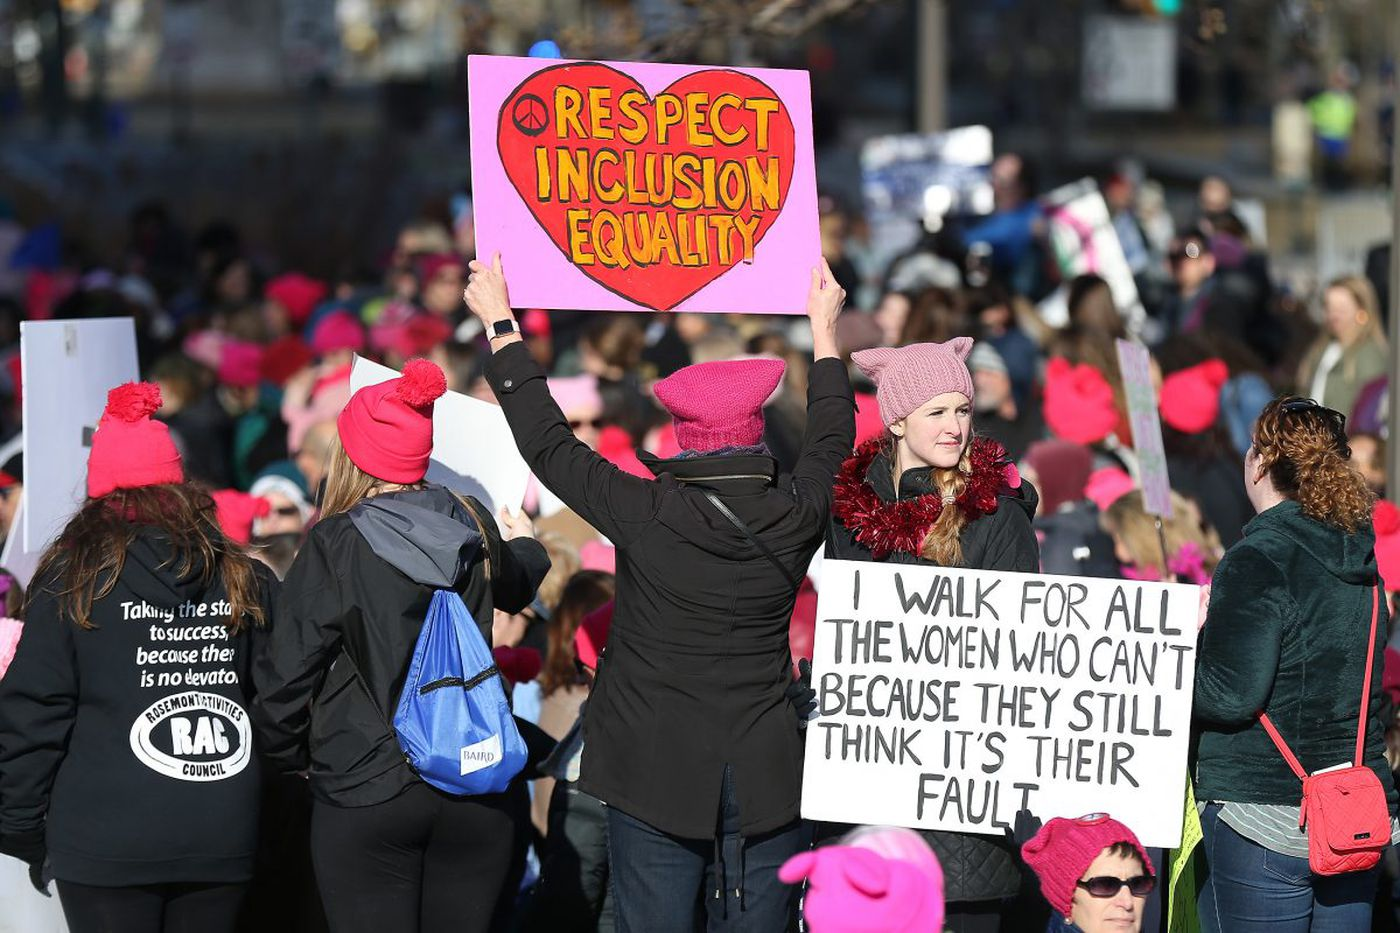 During Women's History Month, a call for more female voices | Opinion